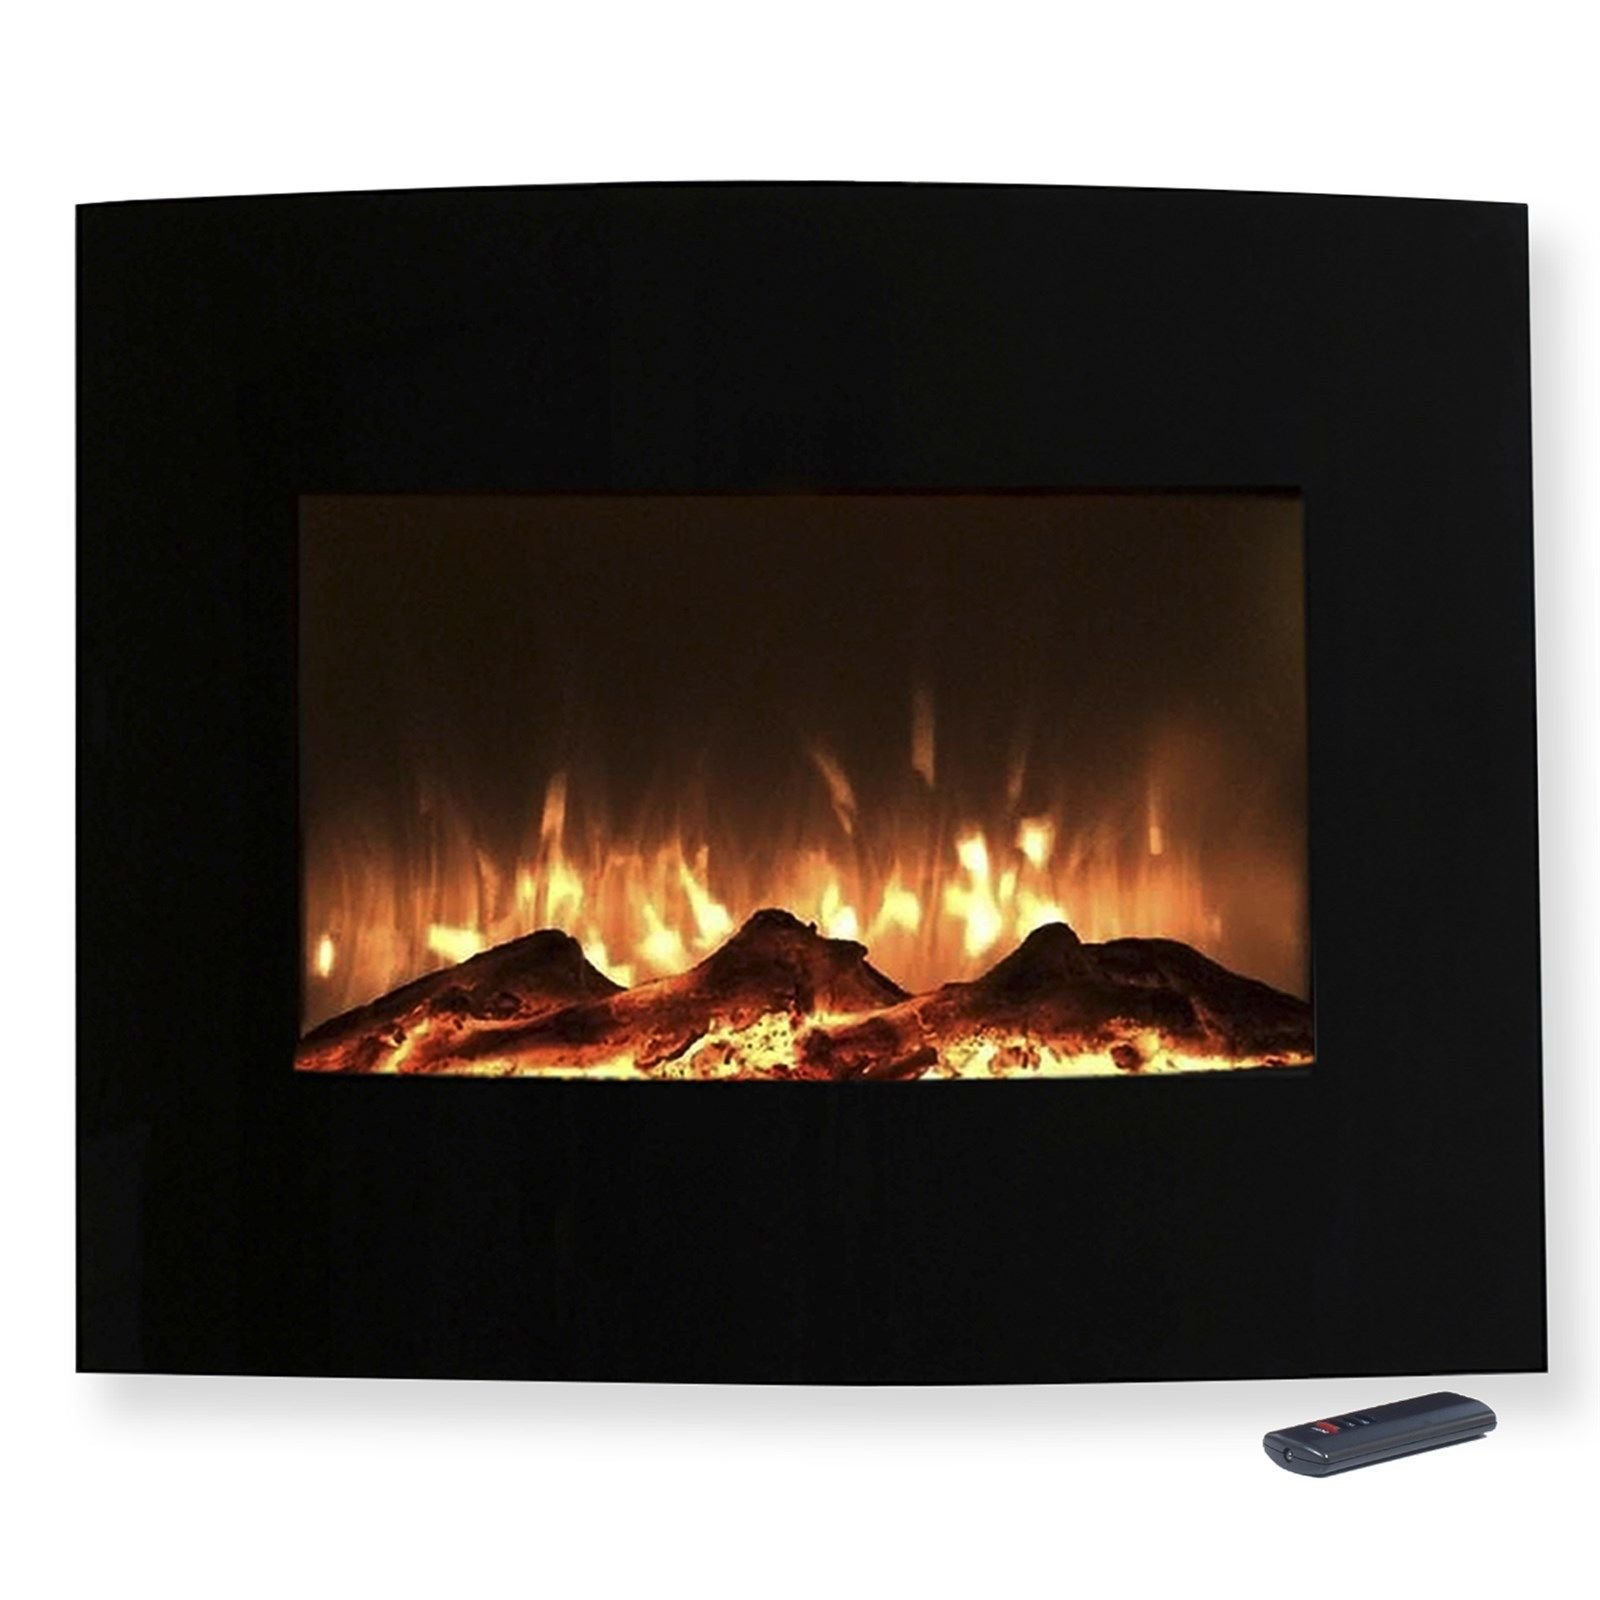 Mini Curved Black Fireplace Wall Mount & Floor Stand 25 x 20 Inches Remote by Love+Grace (Image #2)